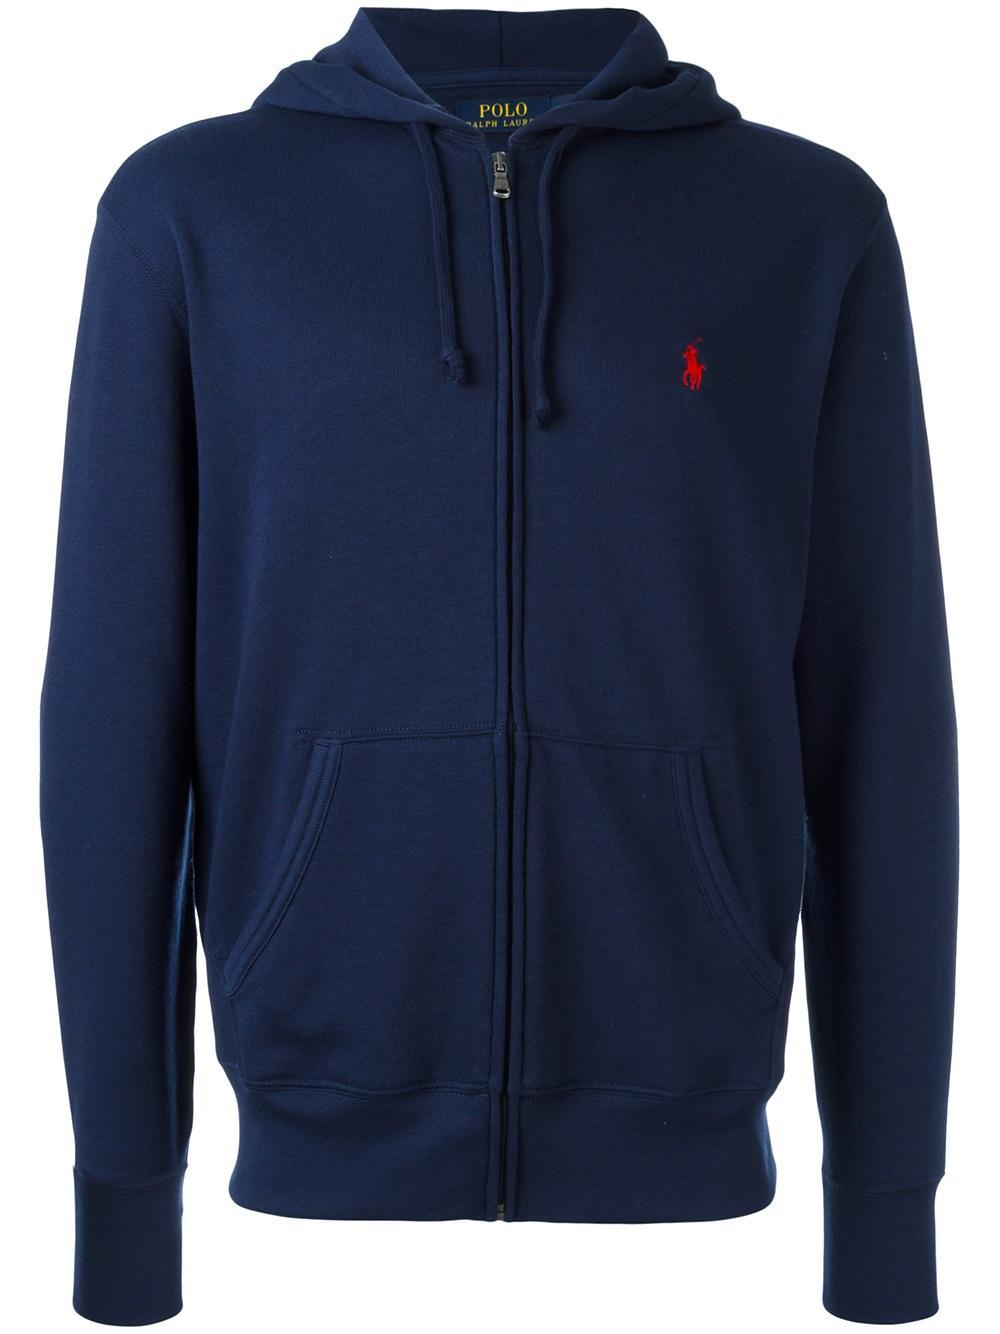 polo ralph lauren classic hooded sweatshirt in blue for men lyst. Black Bedroom Furniture Sets. Home Design Ideas